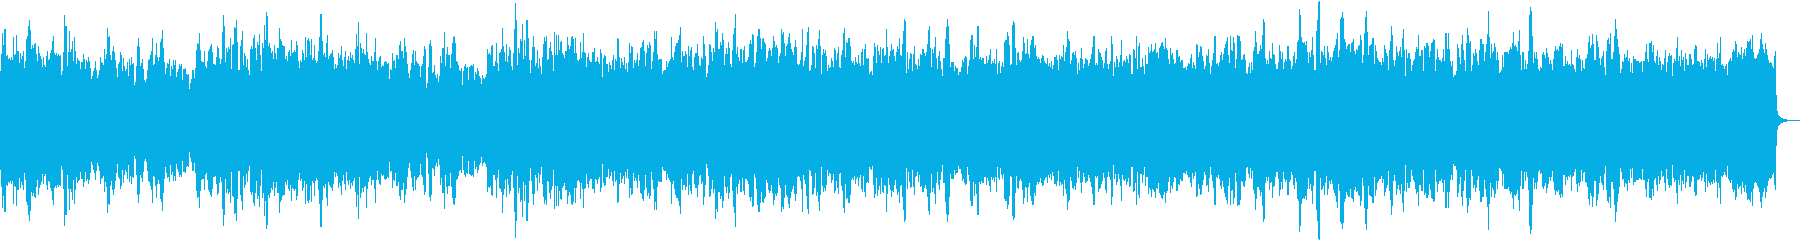 Aria pipe organ playing on G line's reproduced waveform